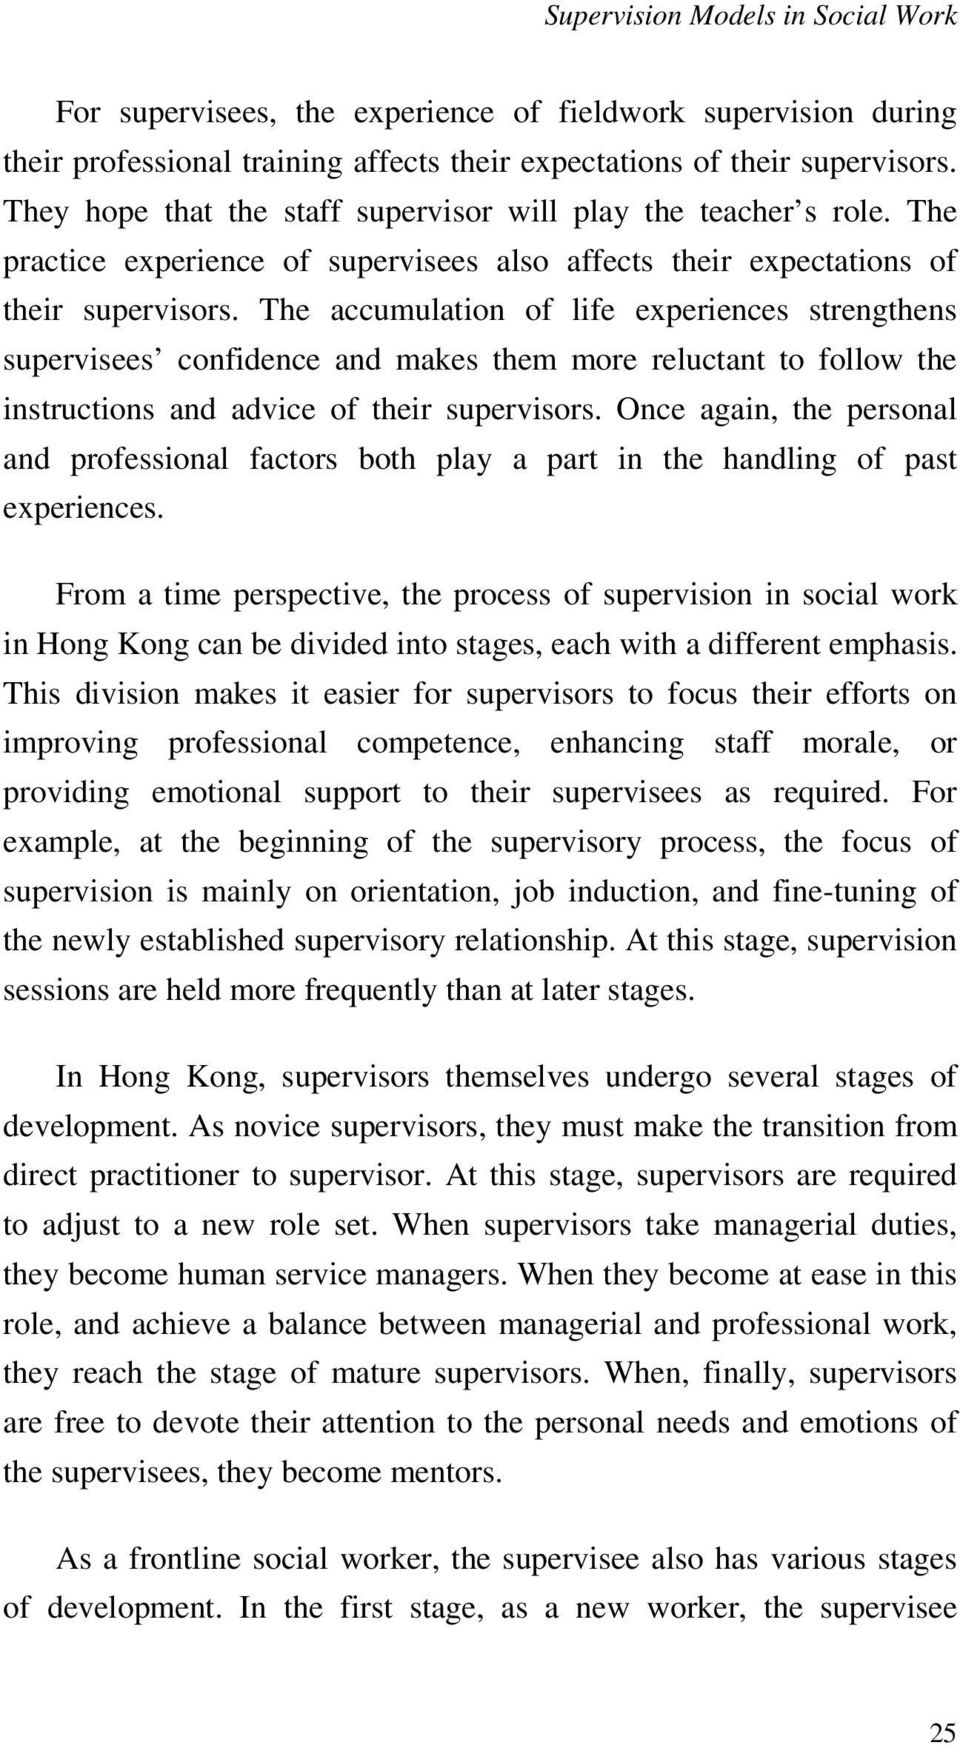 The accumulation of life experiences strengthens supervisees confidence and makes them more reluctant to follow the instructions and advice of their supervisors.